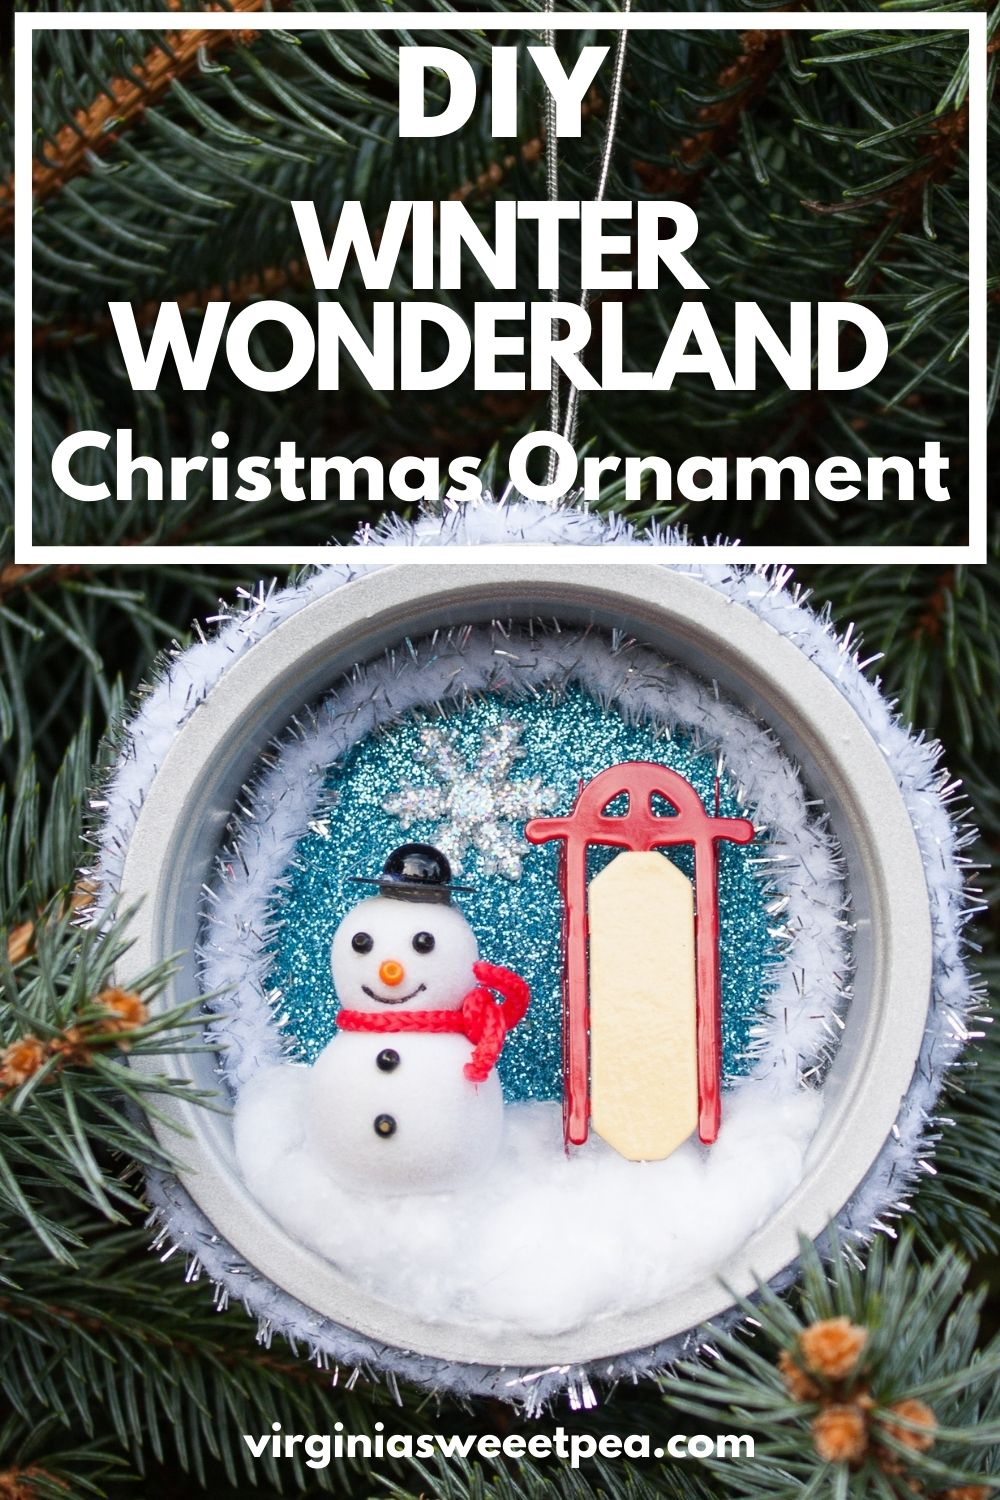 DIY Winter Wonderland Christmas Ornament - You'll never guess what was upcycled to make this pretty ornament! #christmas craft #handmadechristmas #decoratethetree #christmastreeornaments #christmastreeideas via @spaula